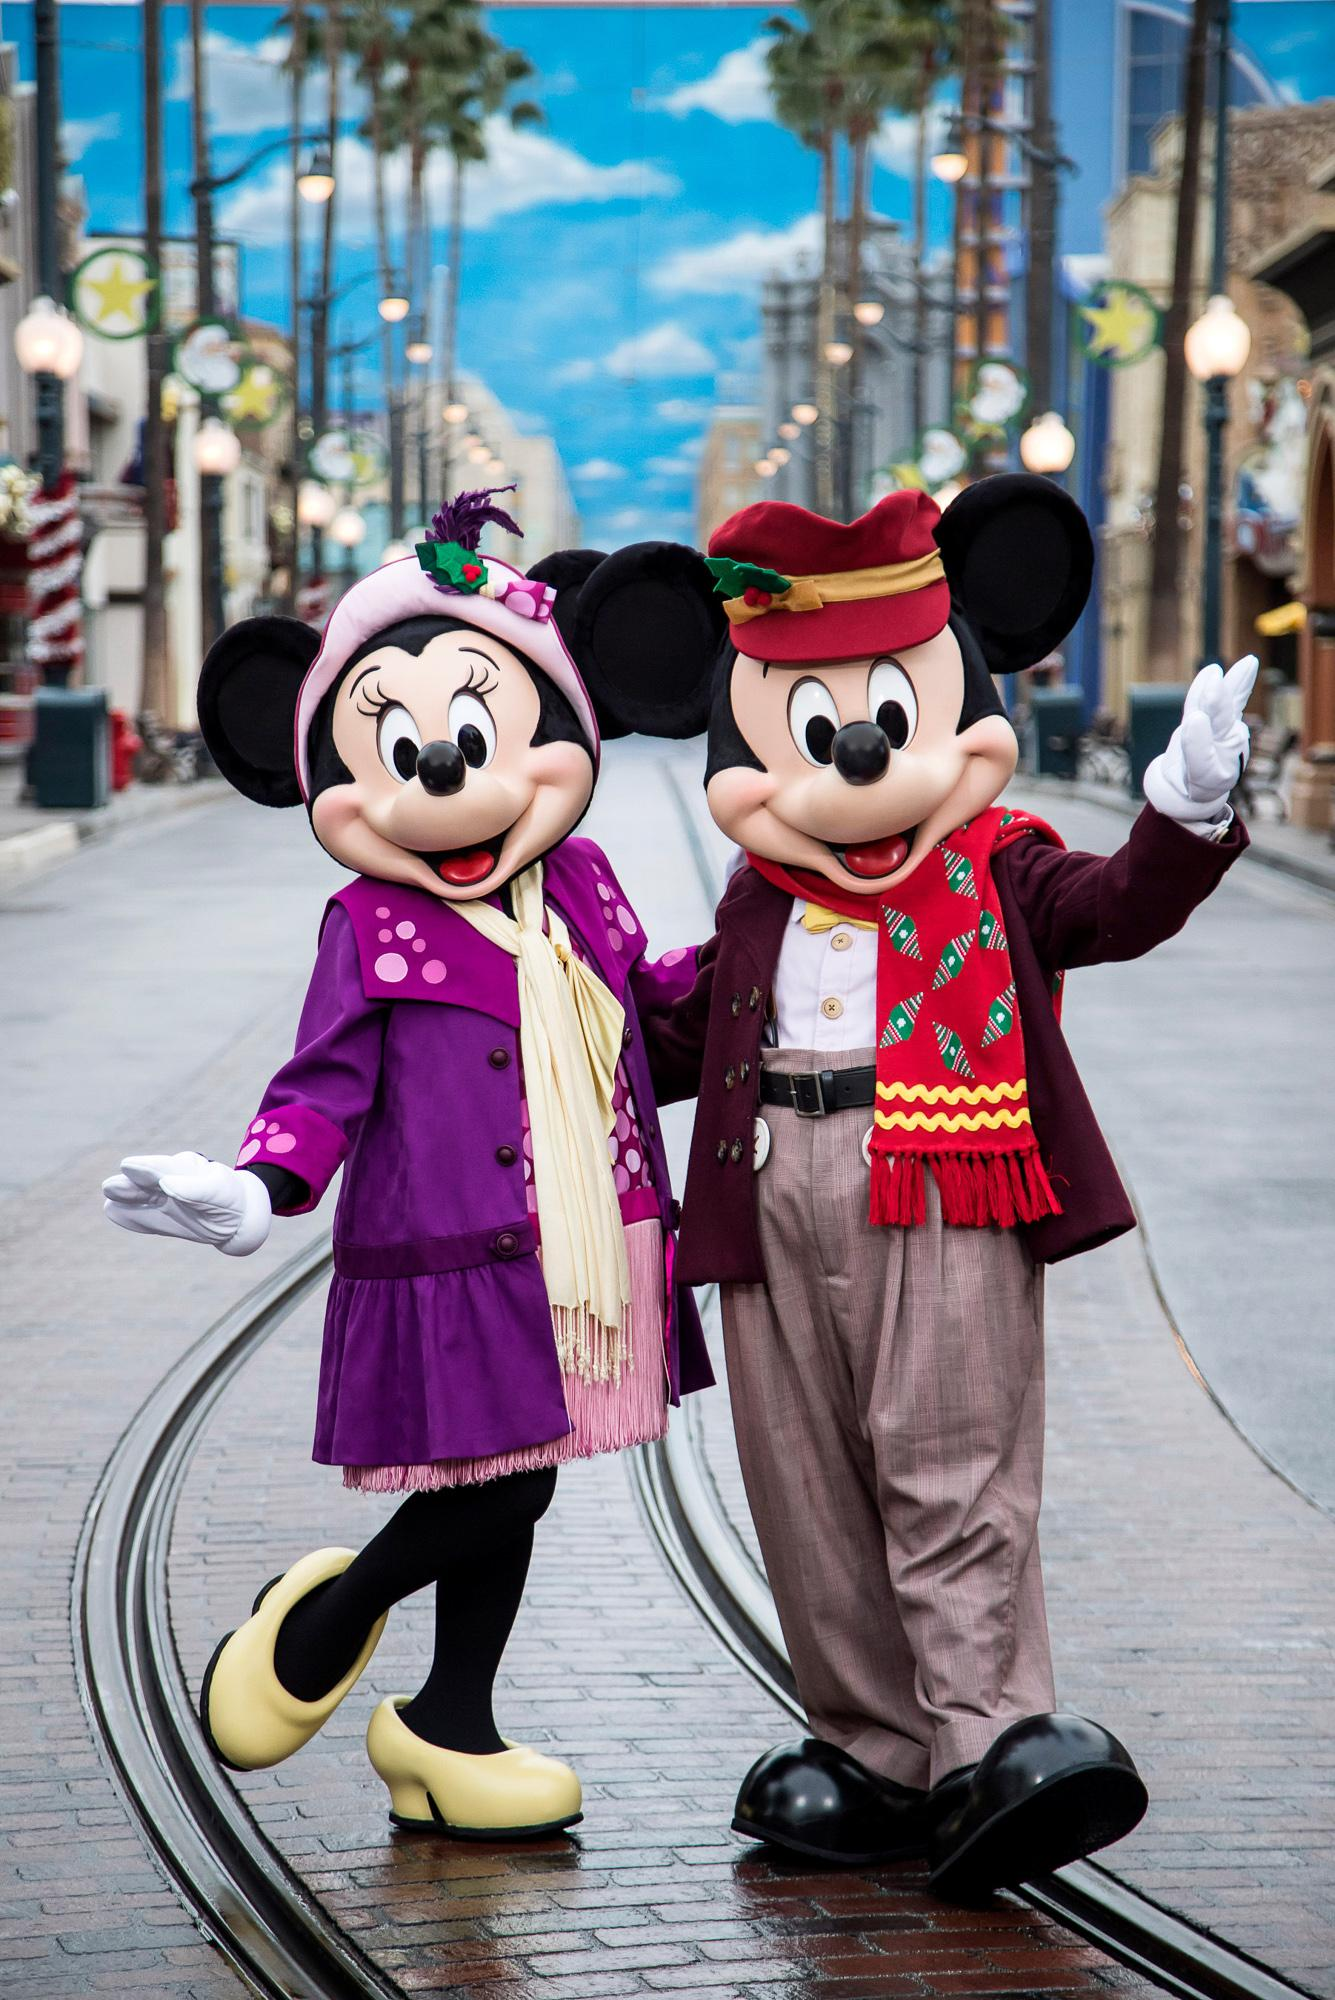 Minnie Mouse and Mickey Mouse dressed up for the holidays